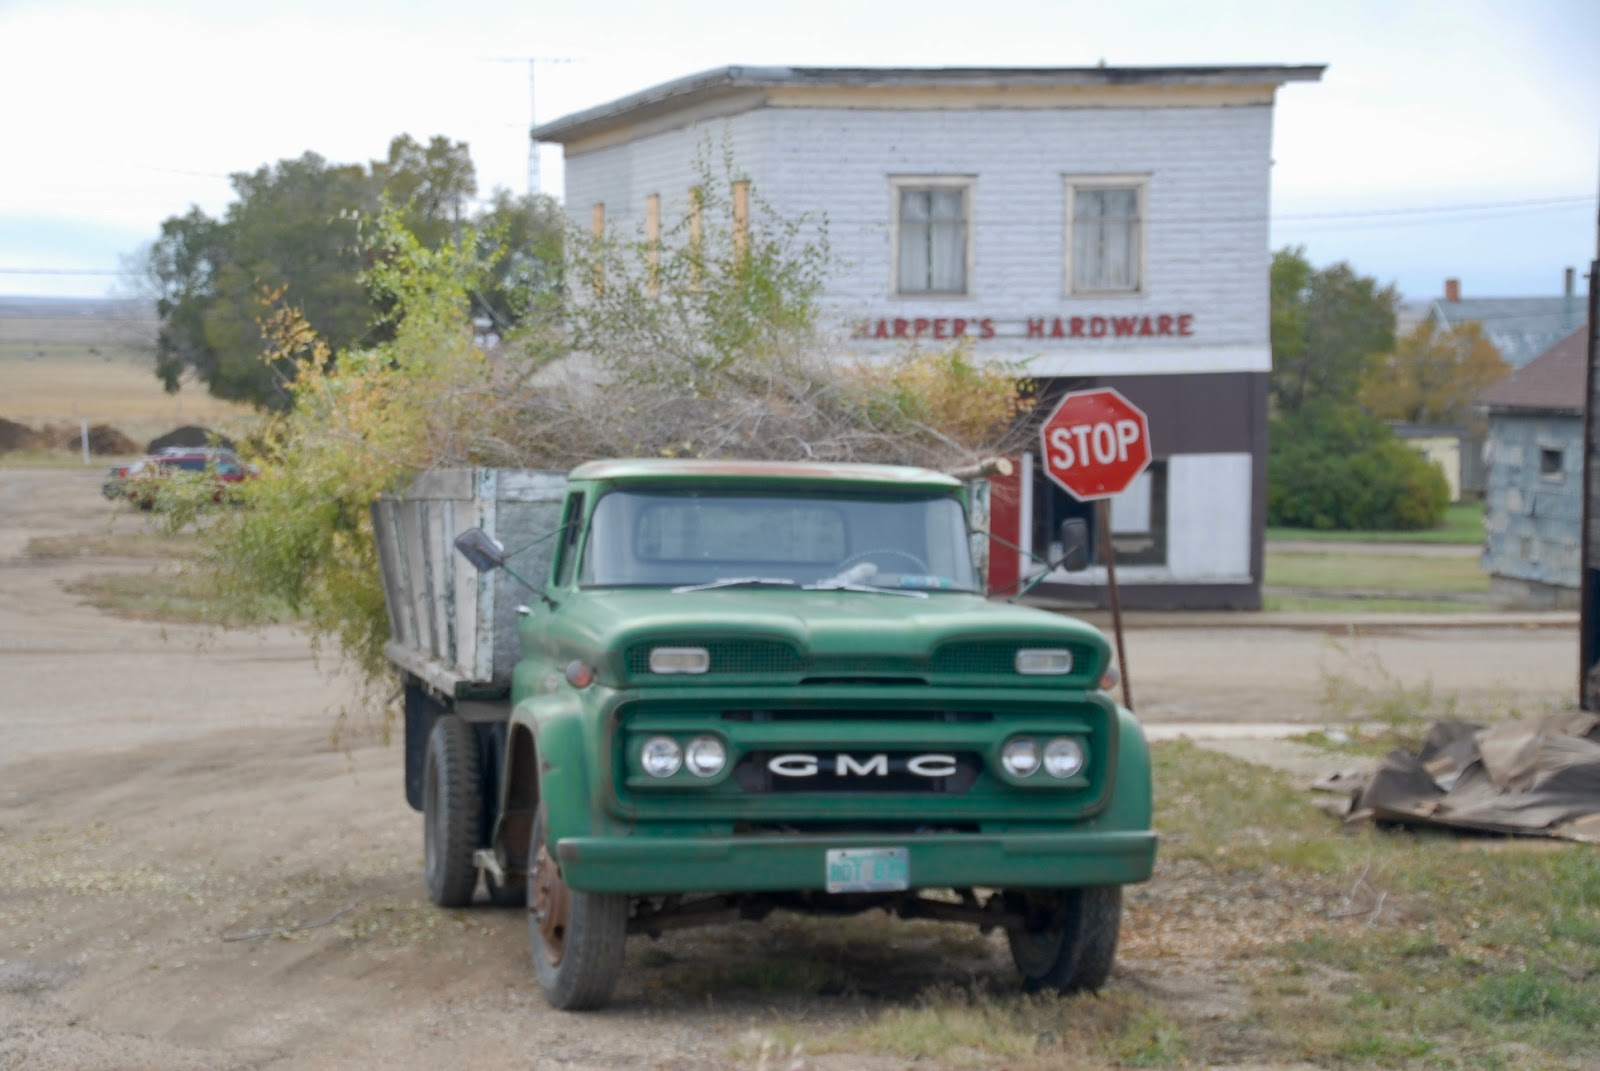 1962 gmc 5000 from alex emond this green truck was parked in kincaid saskatchewan mid chore impressive front on this machine all business  [ 1600 x 1071 Pixel ]